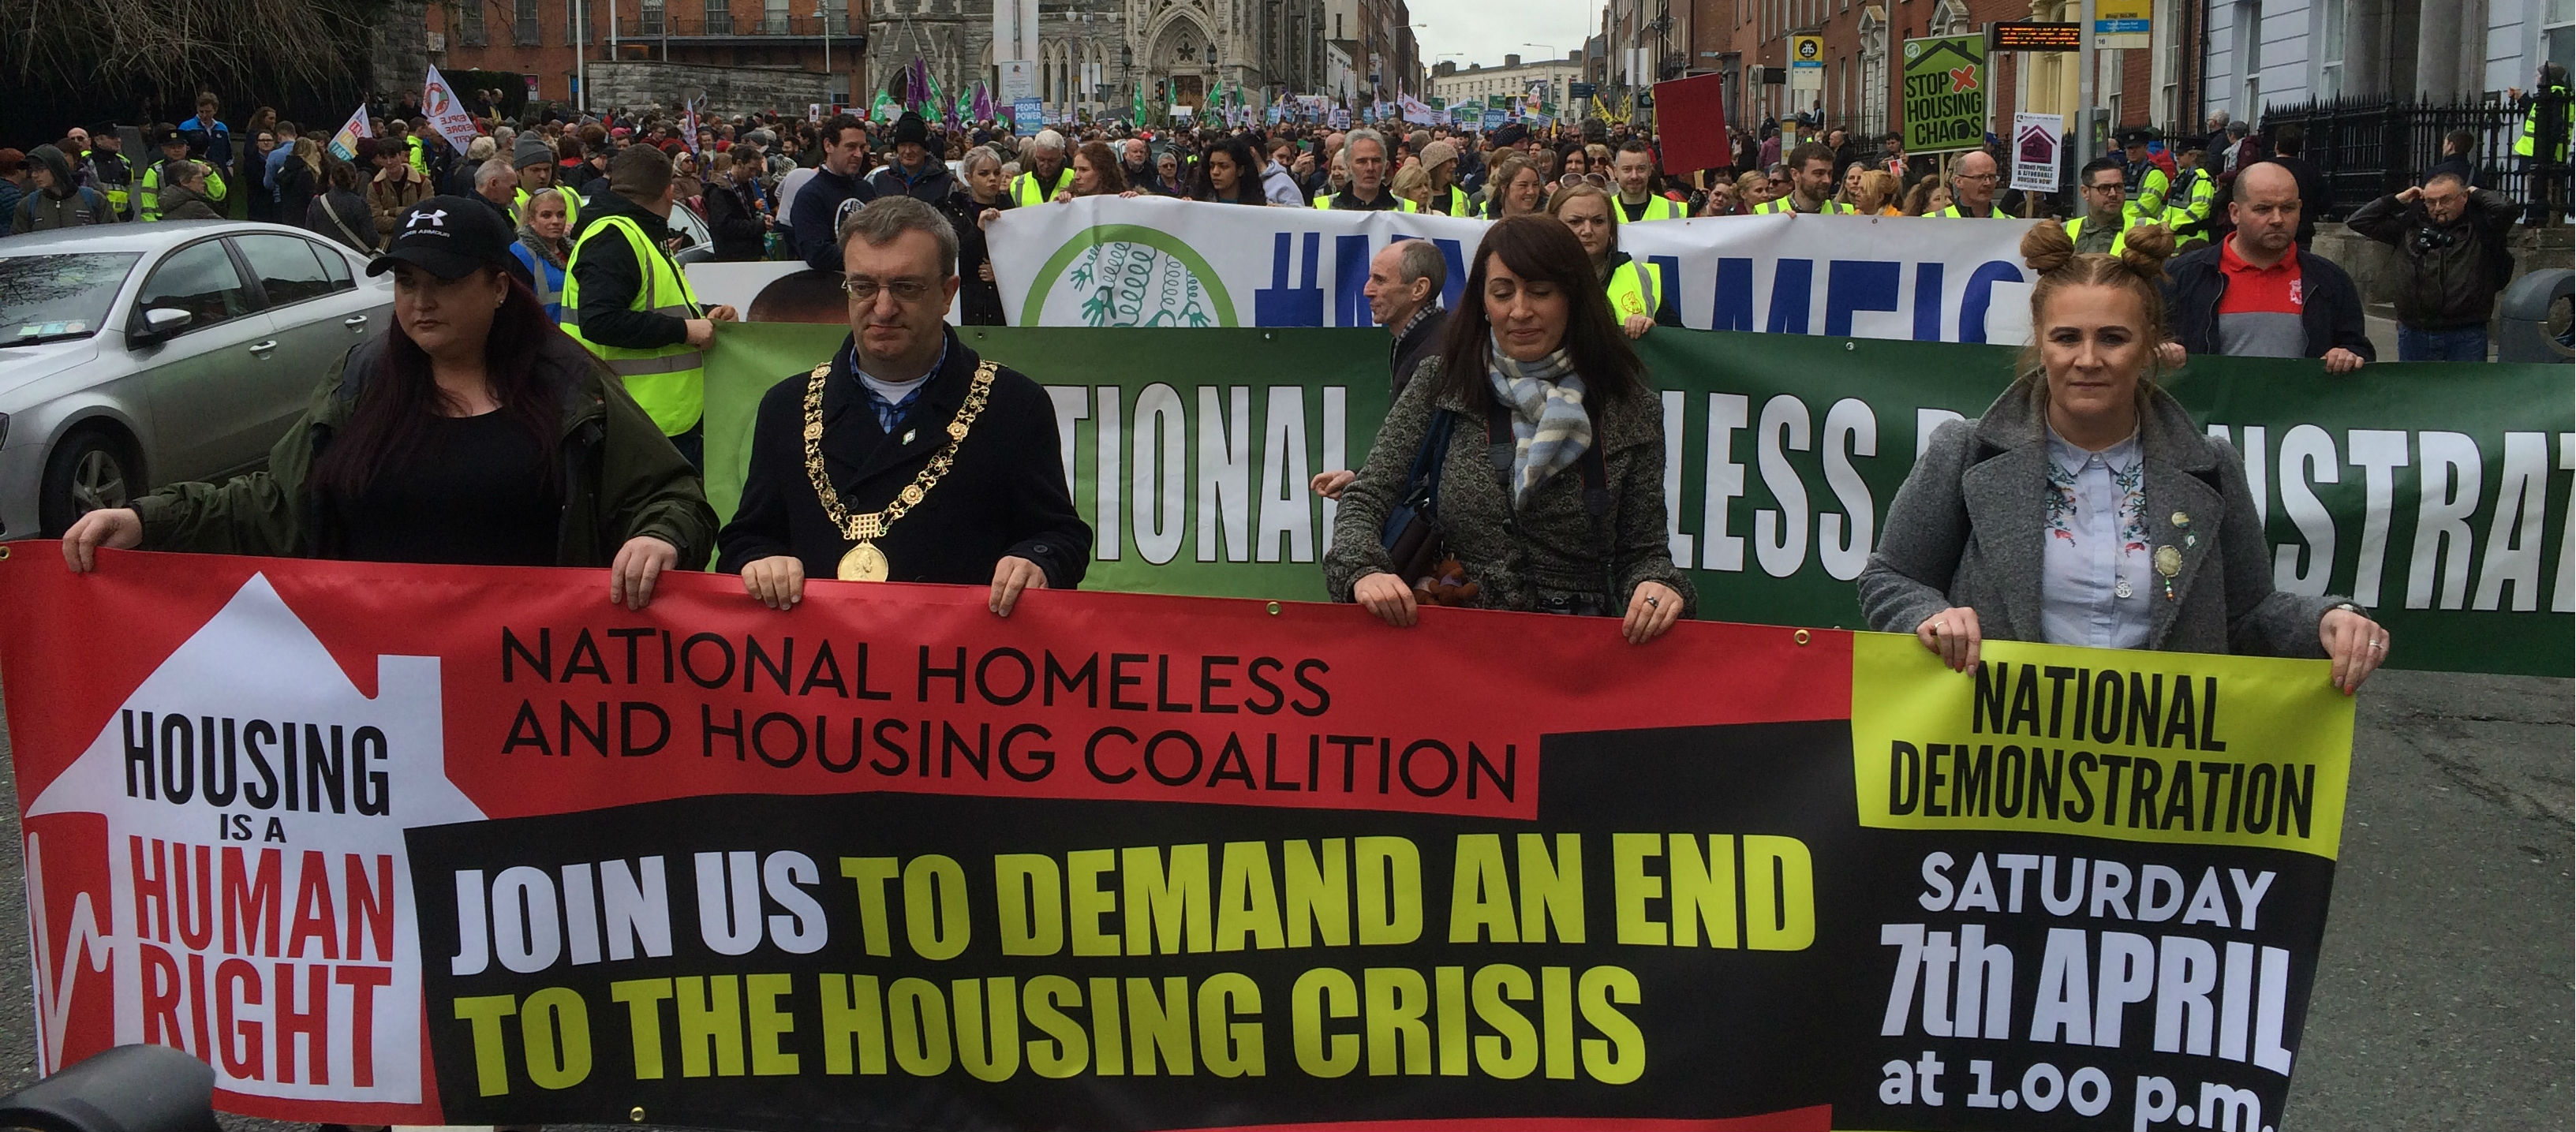 Thousands Protest In Dublin Over Homeless Crisis